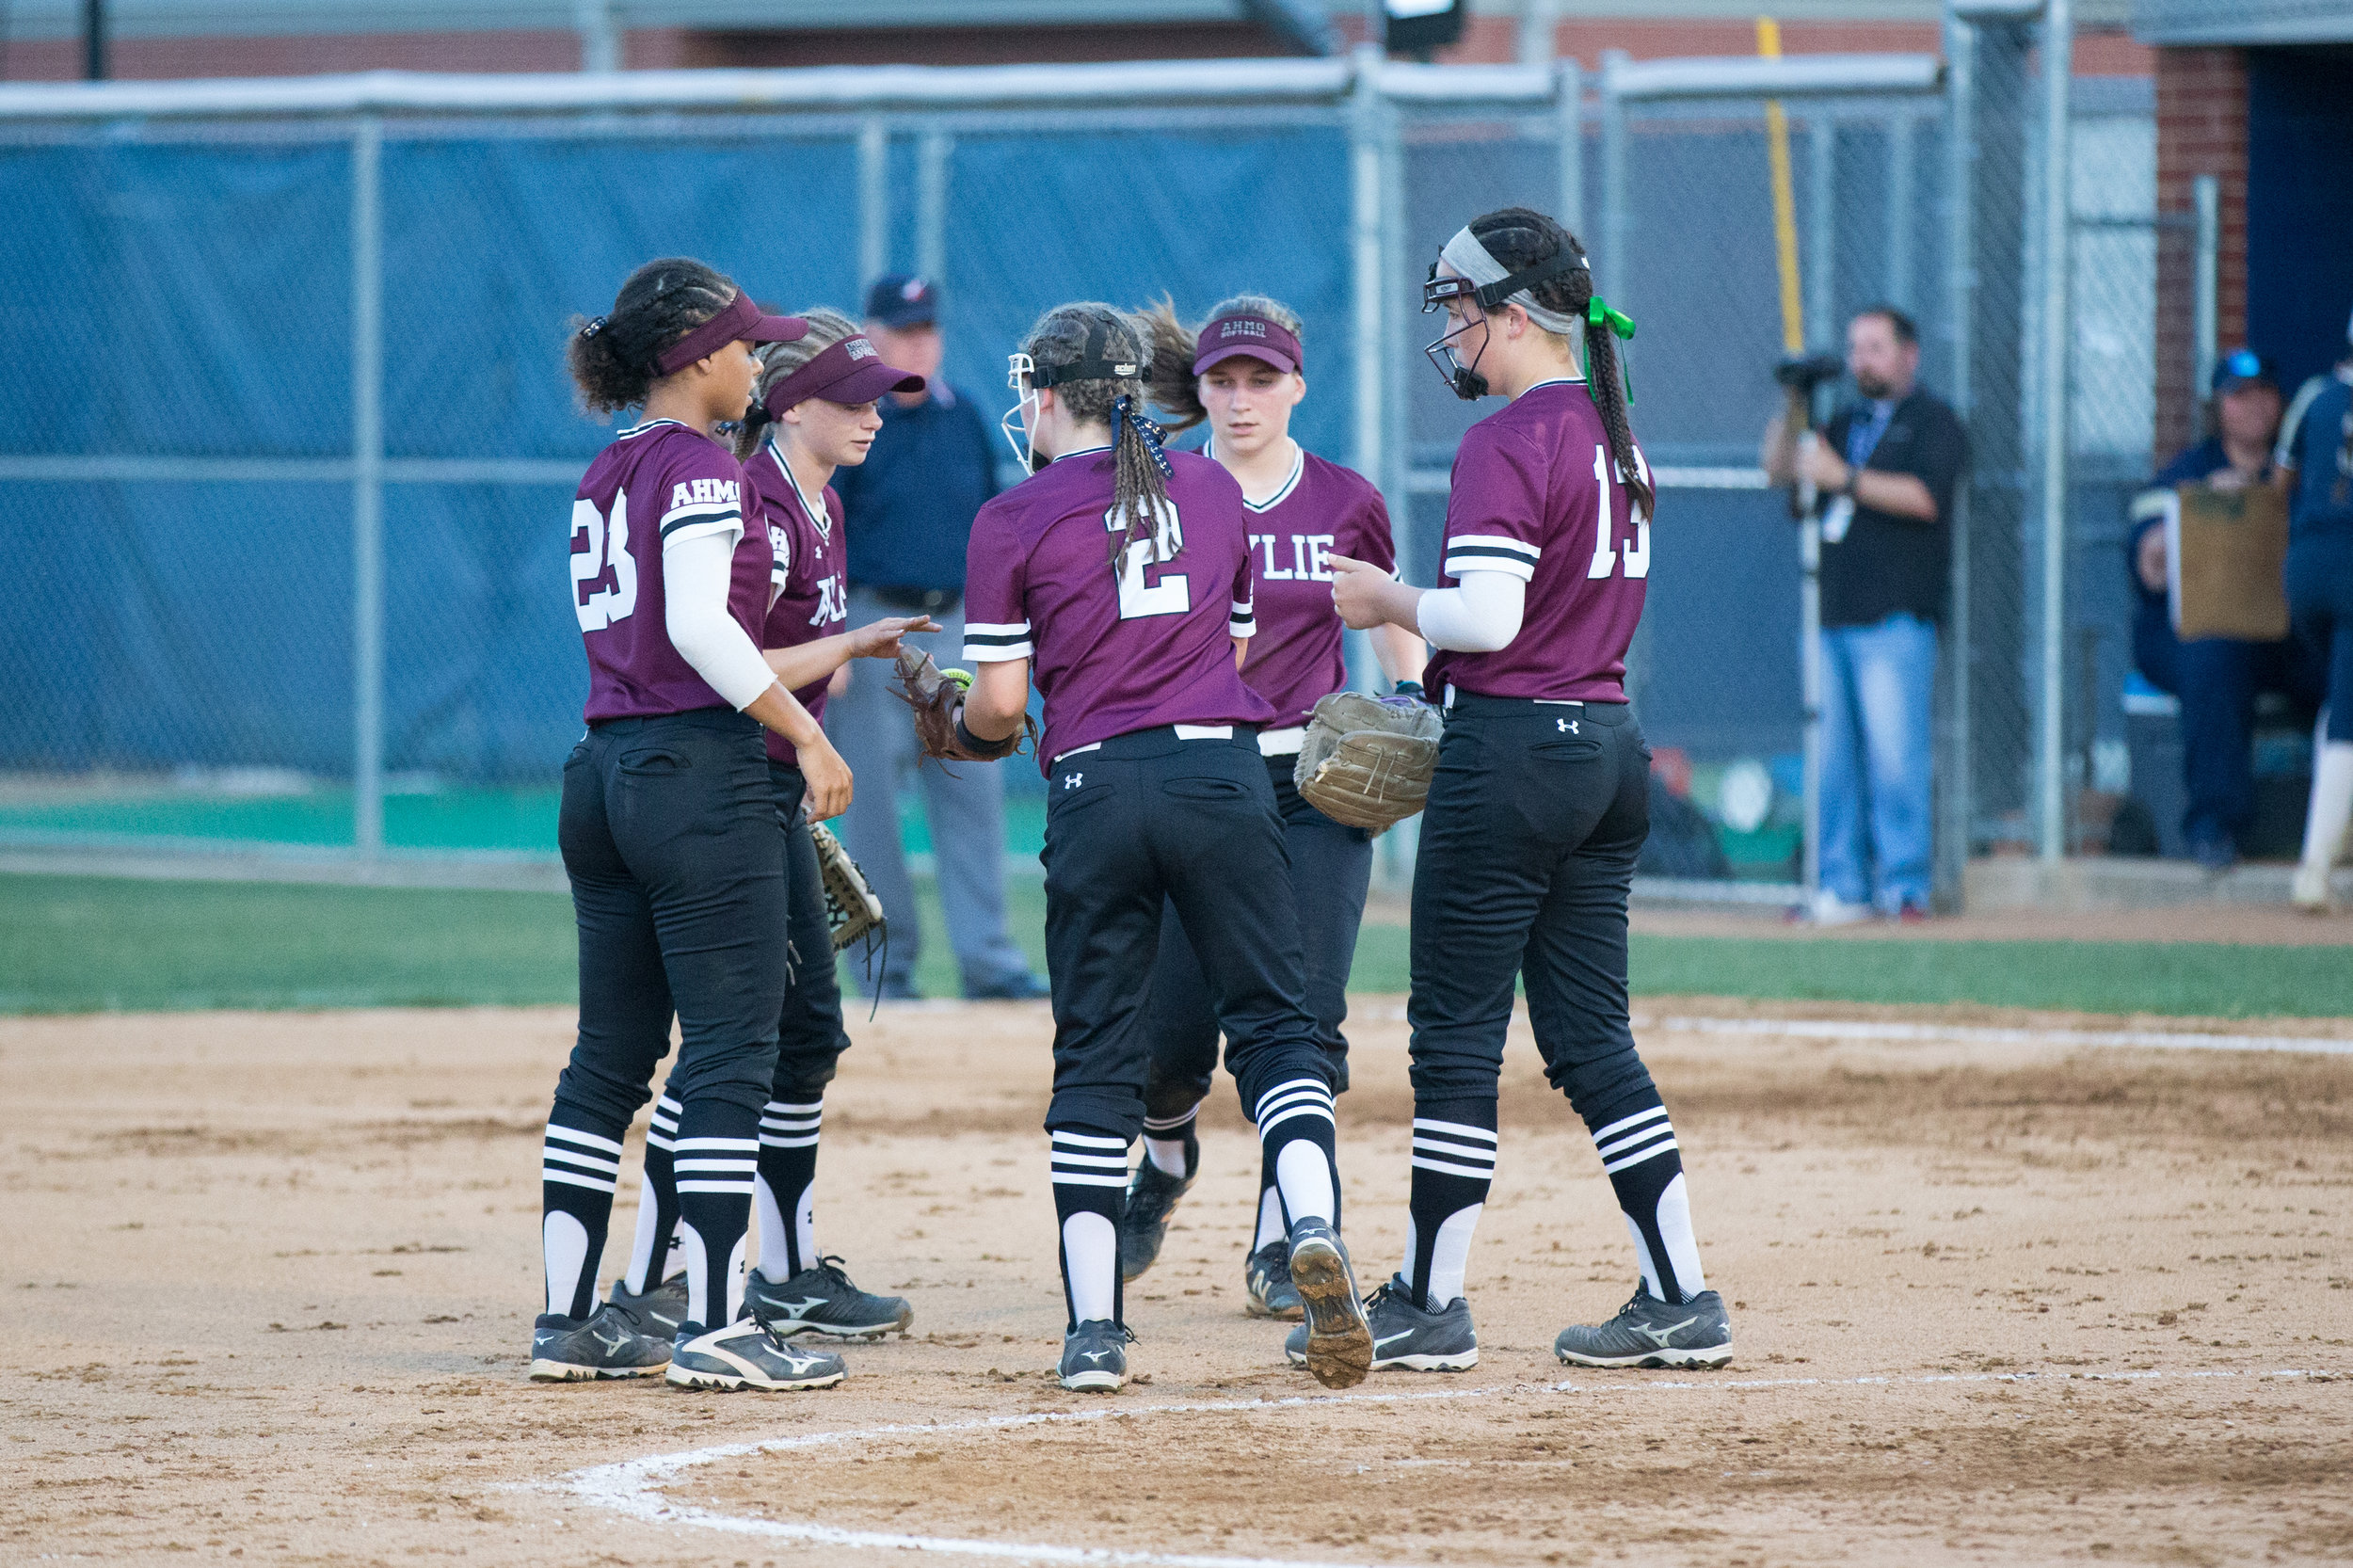 5_18 Wylie Softball-154.jpg